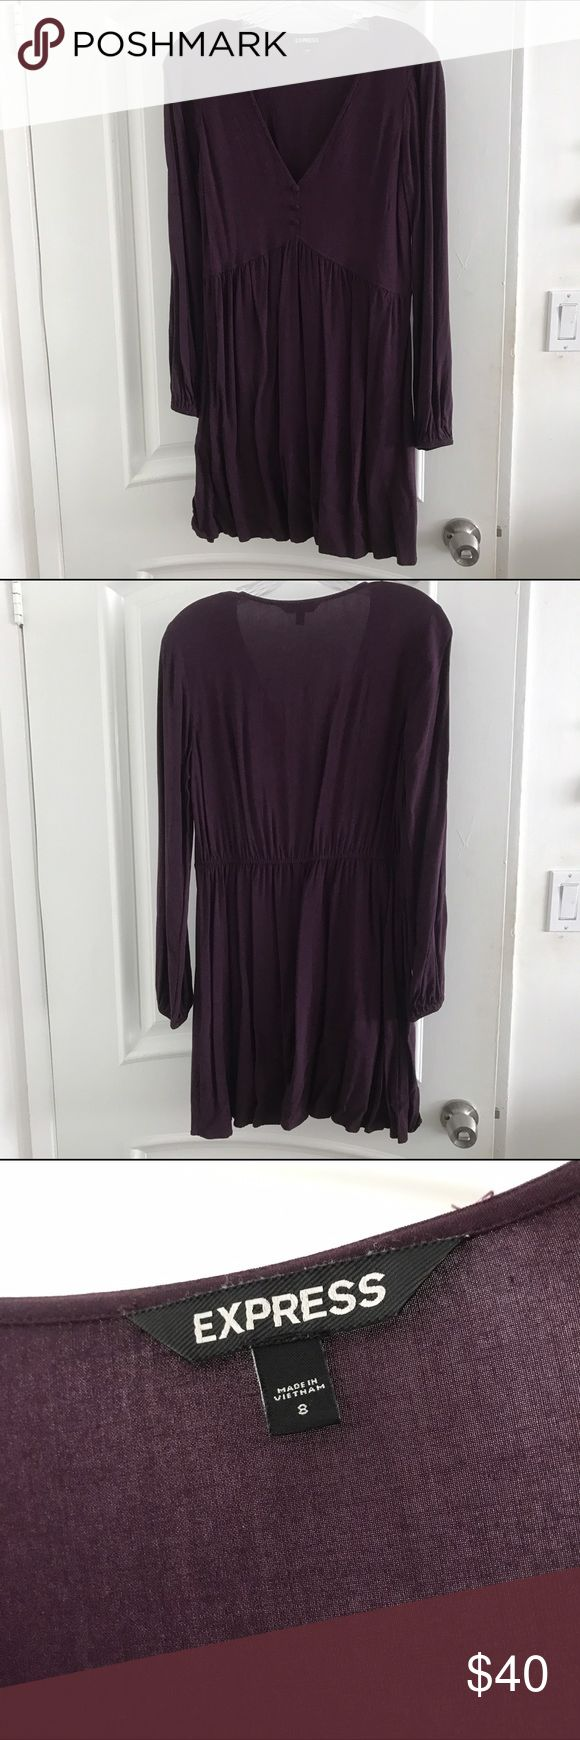 Deep Purple Long Sleeve V Neck Dress Flatter deep purple/plum V neck dress from Express. It's on the shorter side if you are tall. Only worn a few times. Empire waisted band stretches to fit more sizes. Looks adorable with tights and booties in the winter or sandals and strapy heels in the summer. Express Dresses Mini